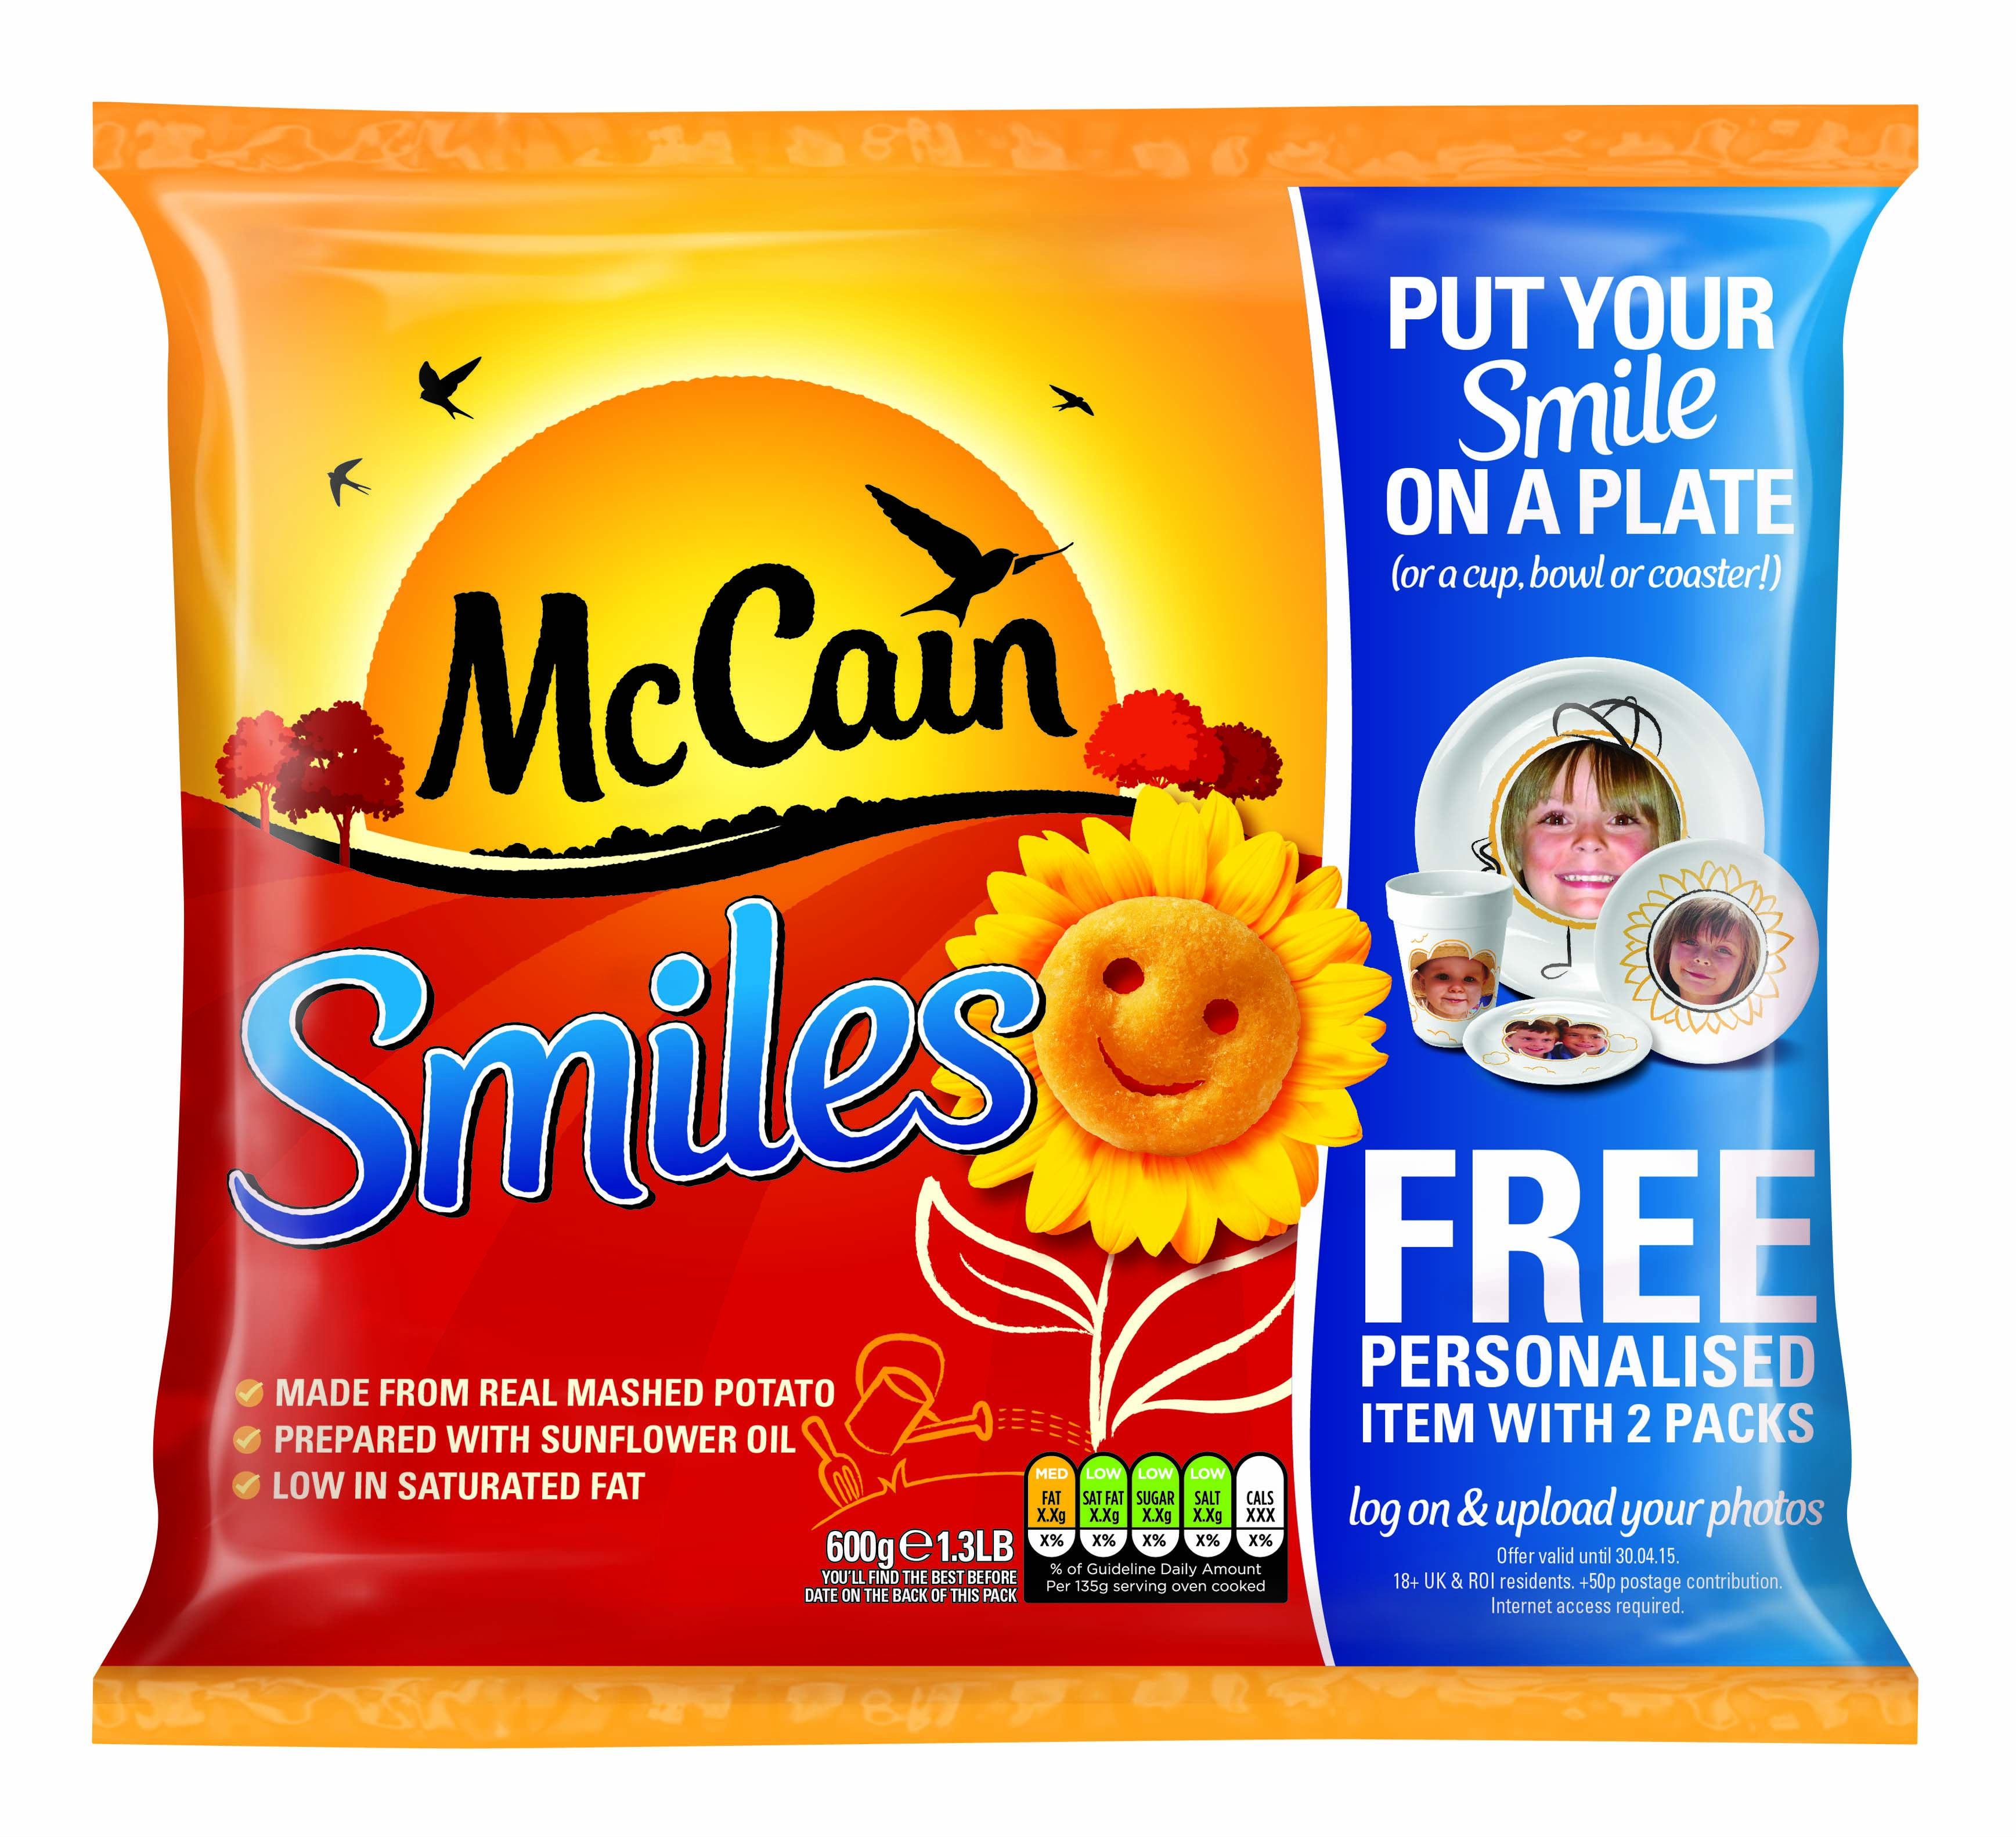 mccain foods 2 essay Our classic mccain original choice thin cut fries with some asian inspired flavour find out how to delight your customers with our stir fries # recipe 2 replies 2 retweets 2 likes.